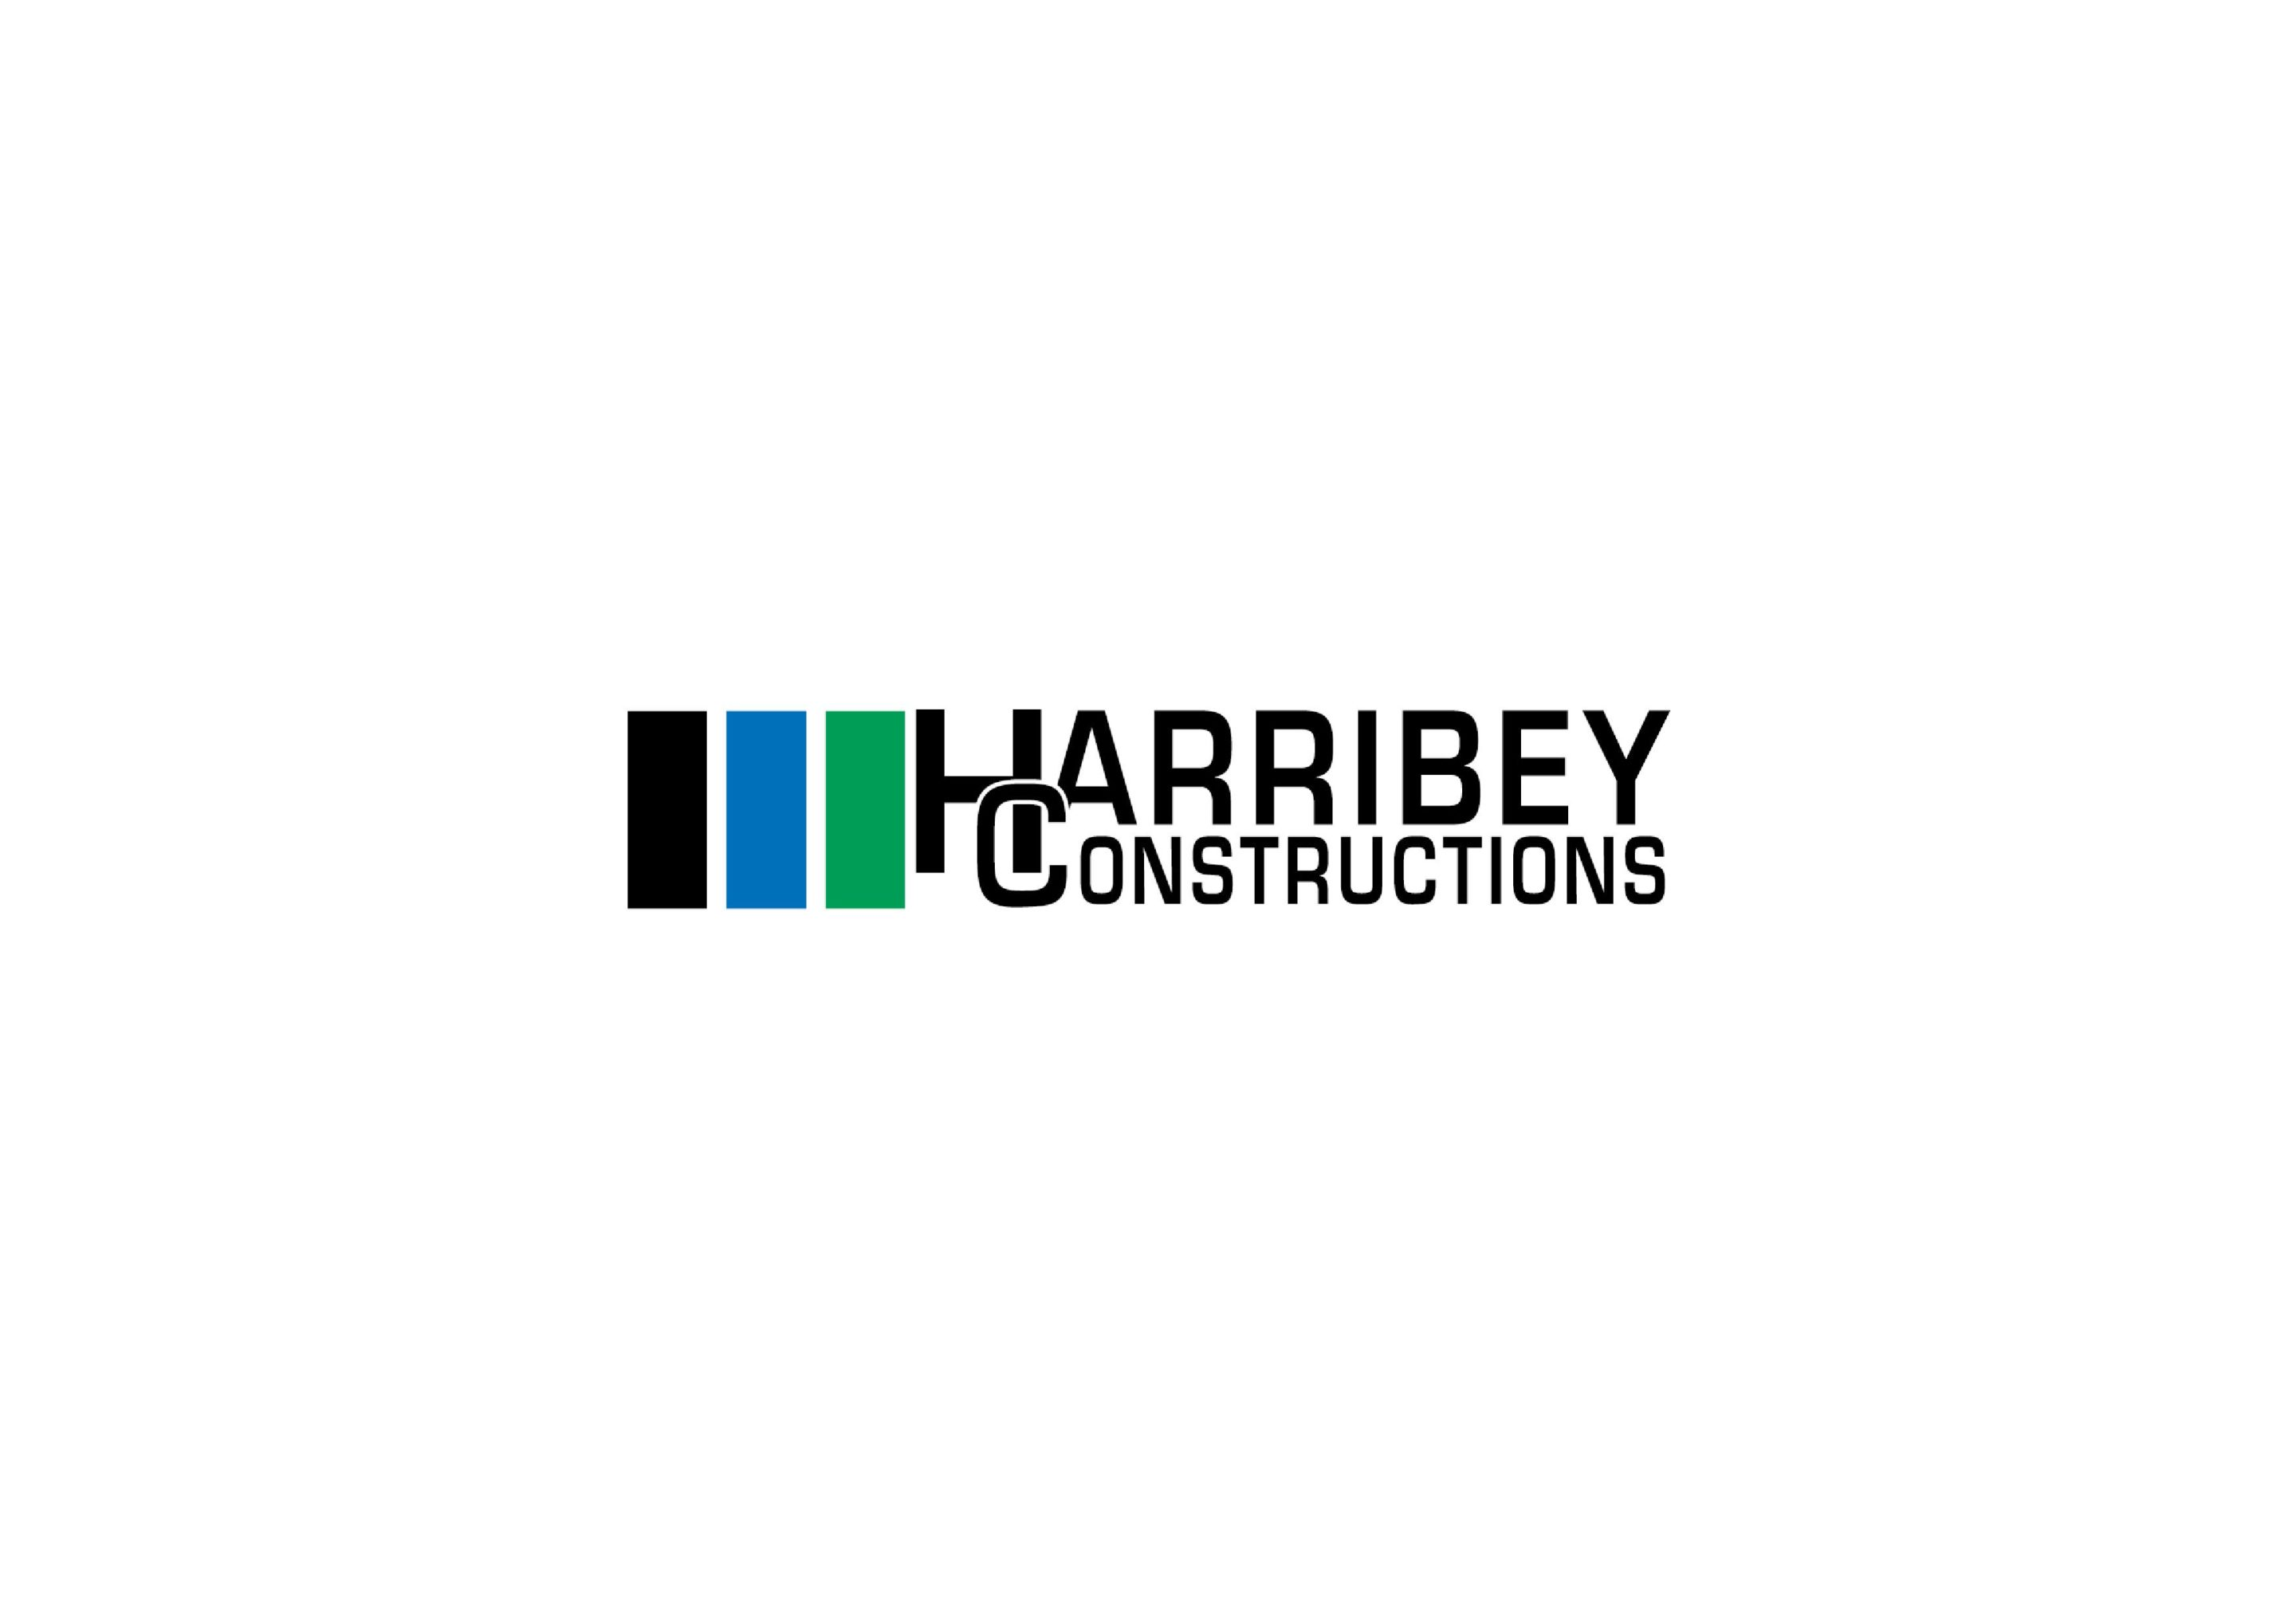 Harribey